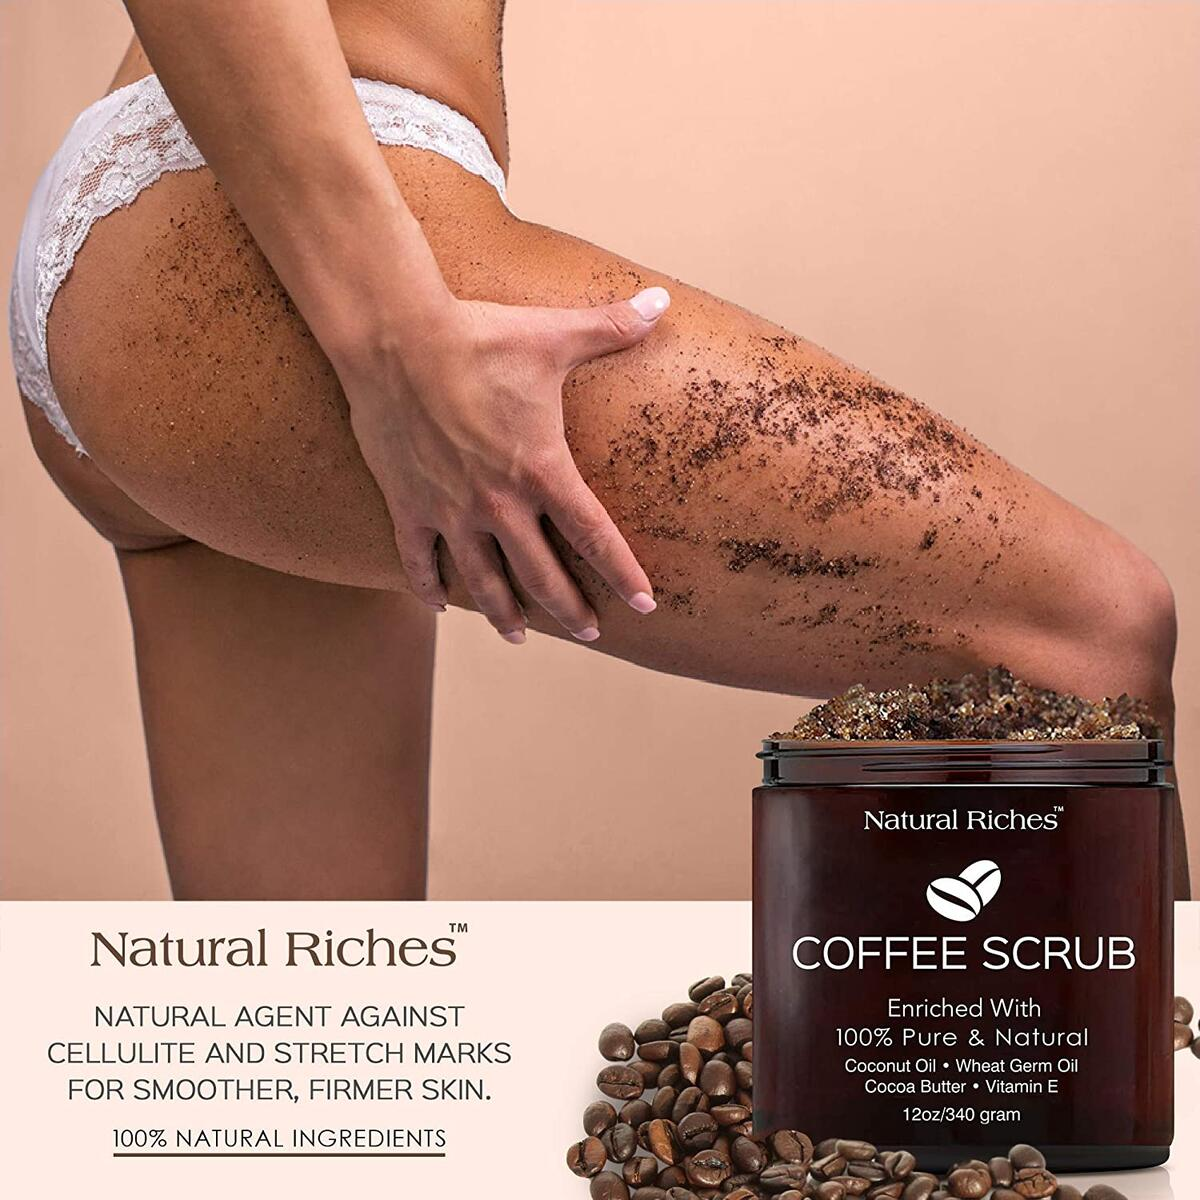 Natural Riches Arabica Coffee Body & Face Scrub – (12 Oz / 340gm) Deep Cleansing Exfoliator All-Natural exfoliates with Coconut & Cocoa Butter for Stretch Marks Acne Cellulite Spider Veins Varicose Veins Age Spots…